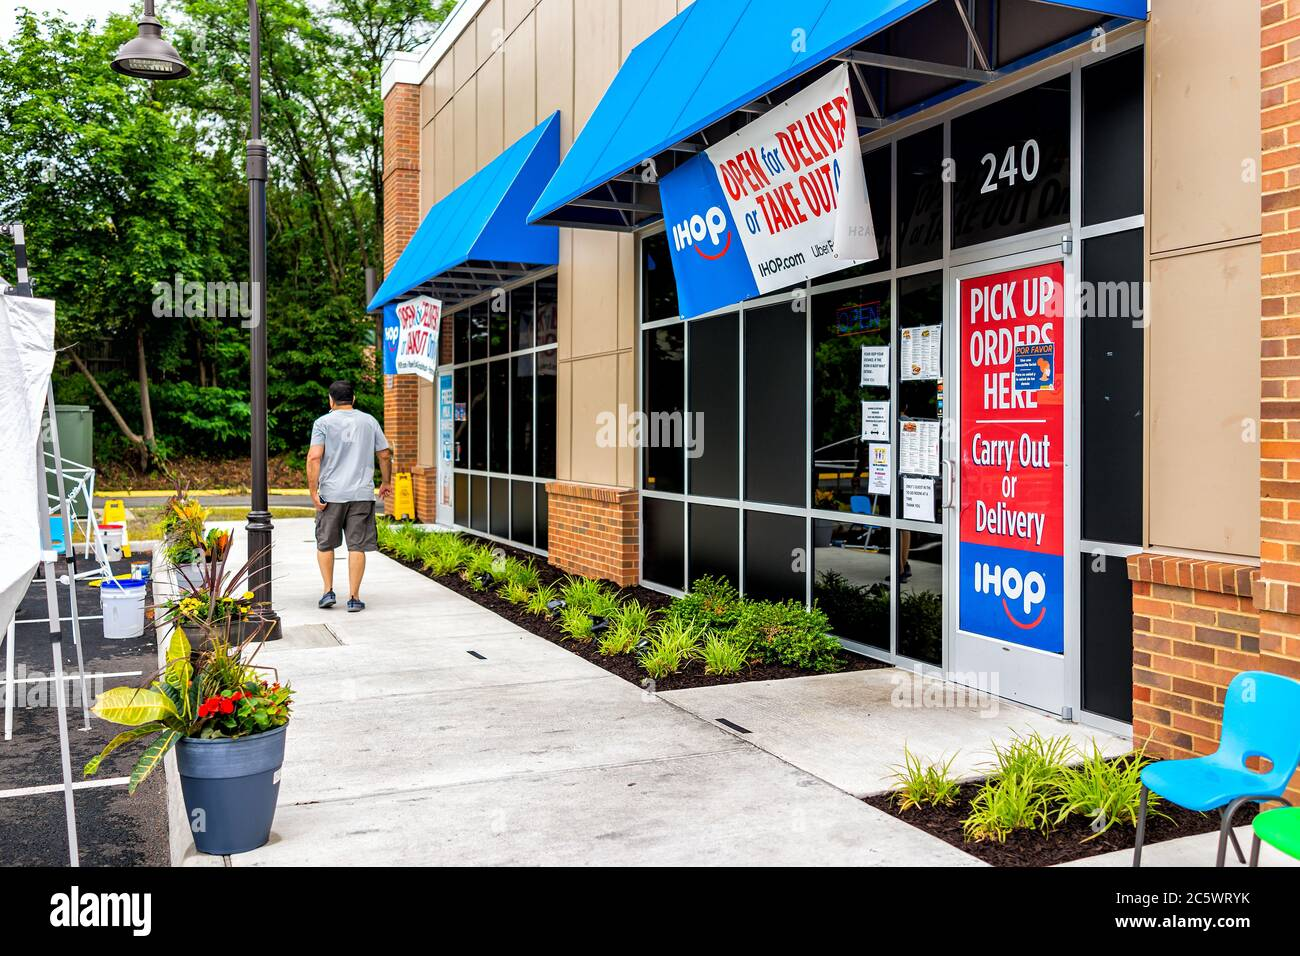 Herndon, USA - June 11, 2020: Virginia Fairfax County street with building exterior sign for open ihop restaurant for take-out and delivery during cor Stock Photo